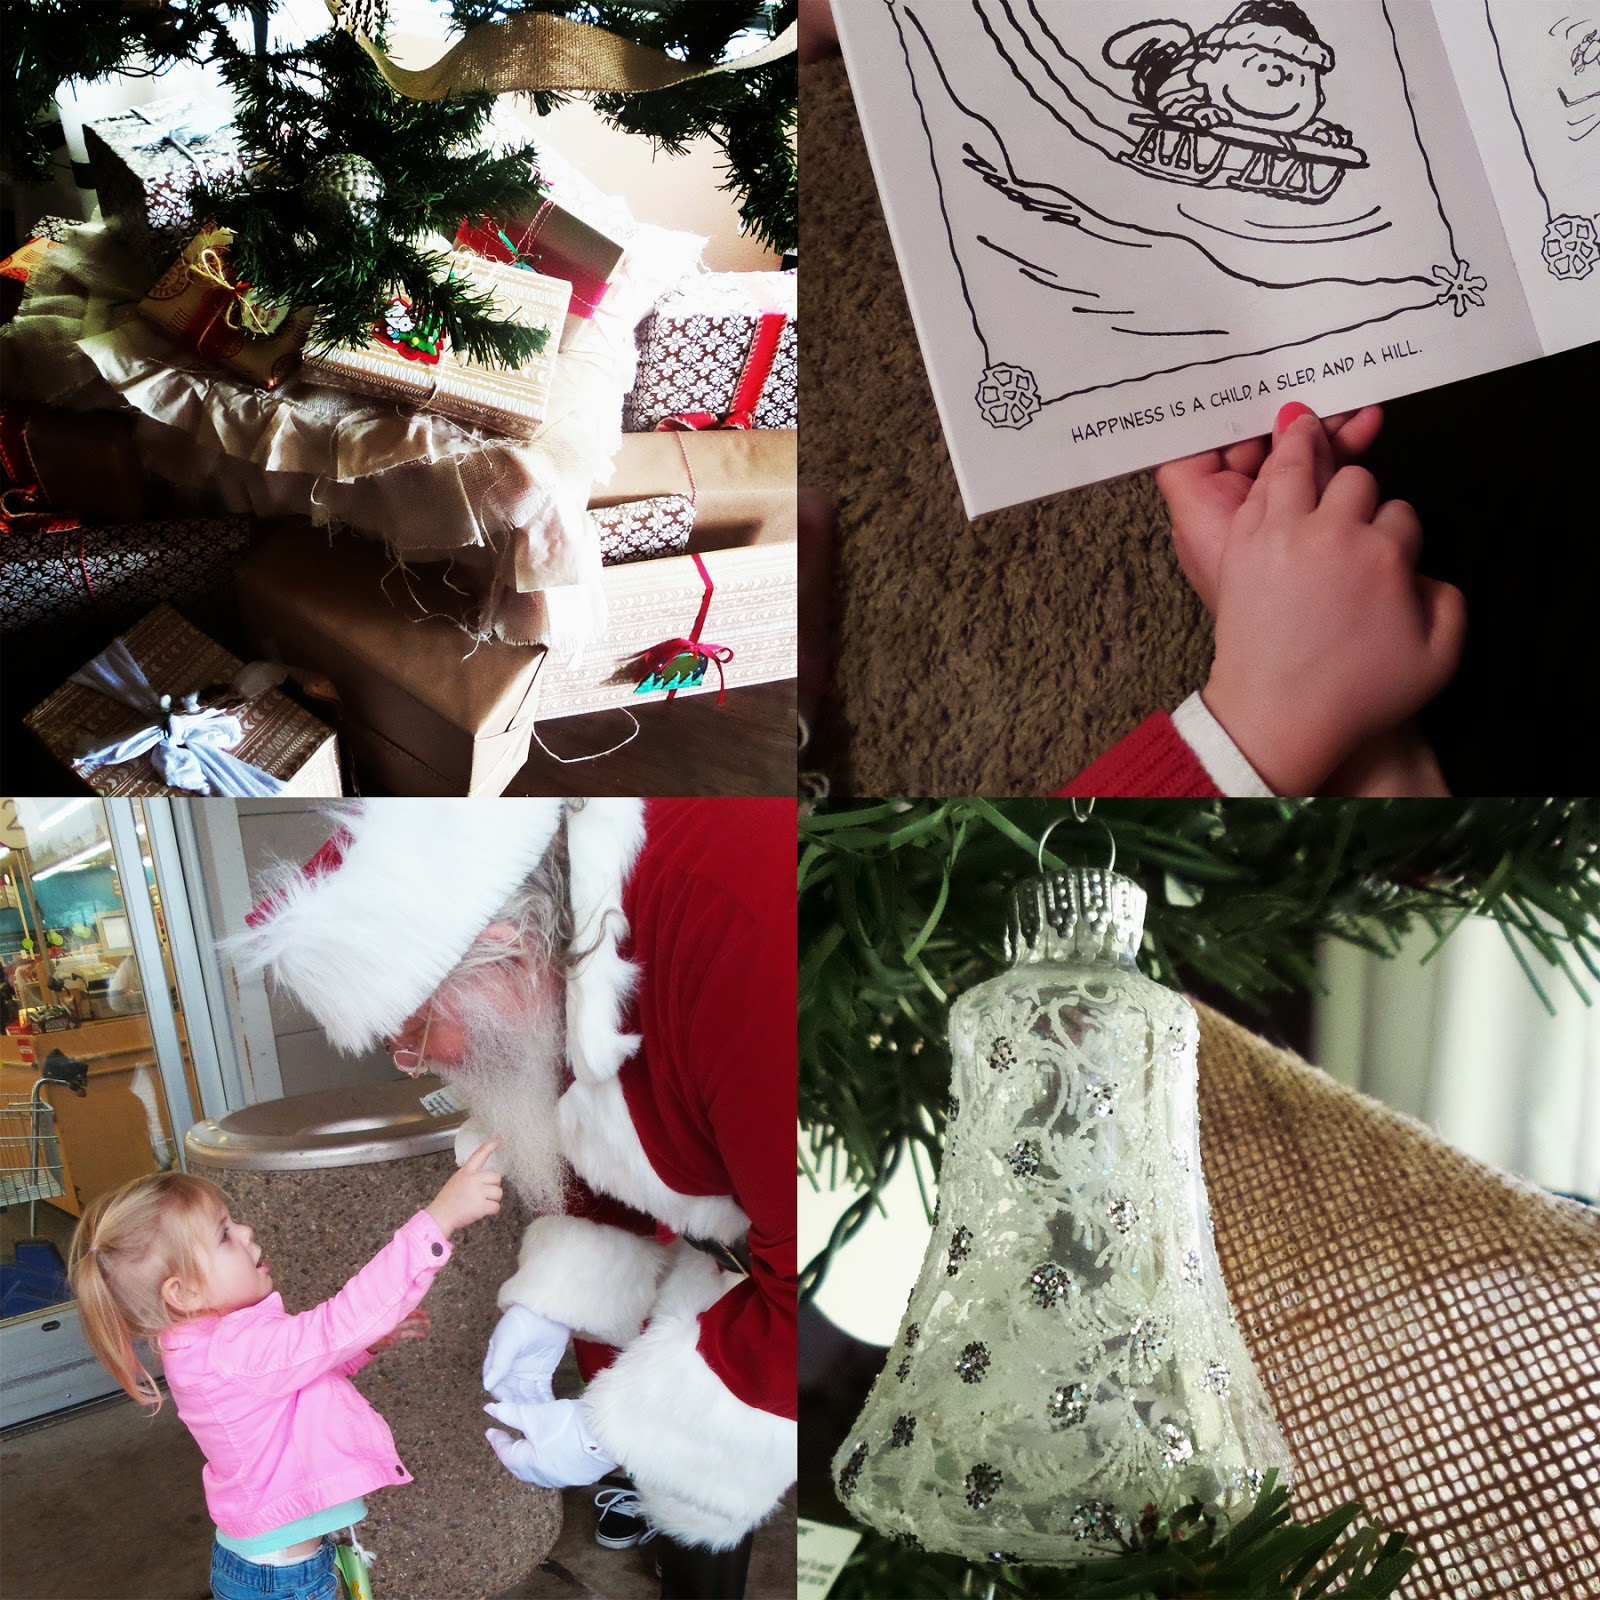 #2014ChristmasPhoto Challenge: the final wrap up